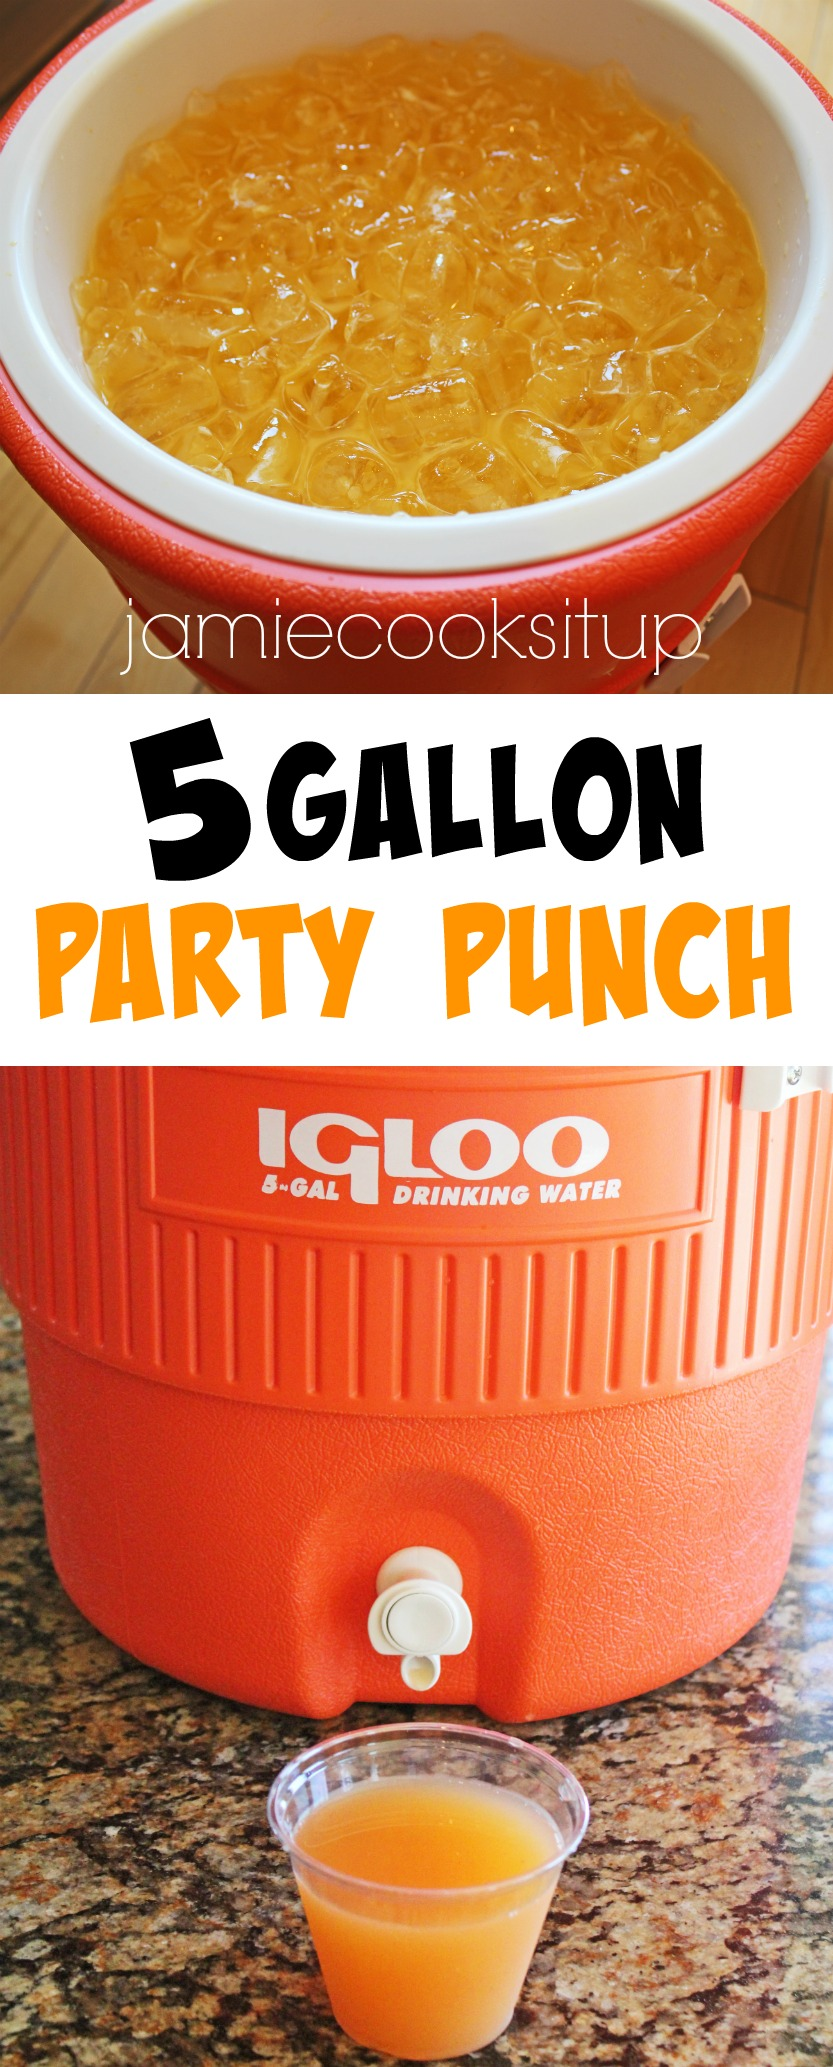 5 Gallon Party Punch from Jamie Cooks It Up!